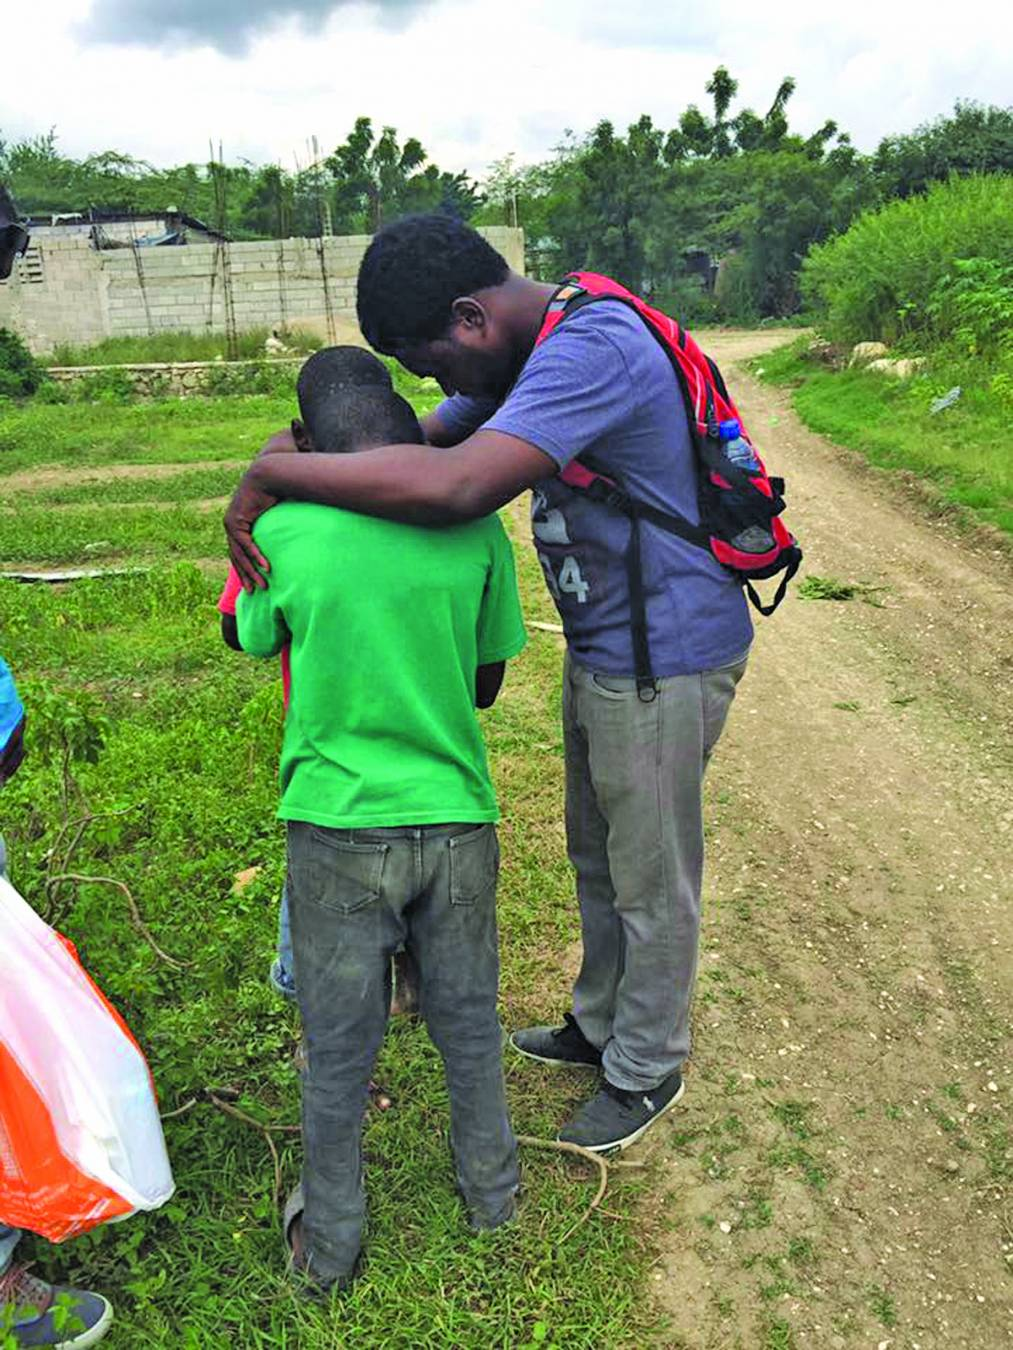 A Haitian boy is prayed for during a Louisiana Baptist mission trip to the country. Mission teams will be needed to build a children's village, medical clinic, pastor's training center and hotel in Haiti.